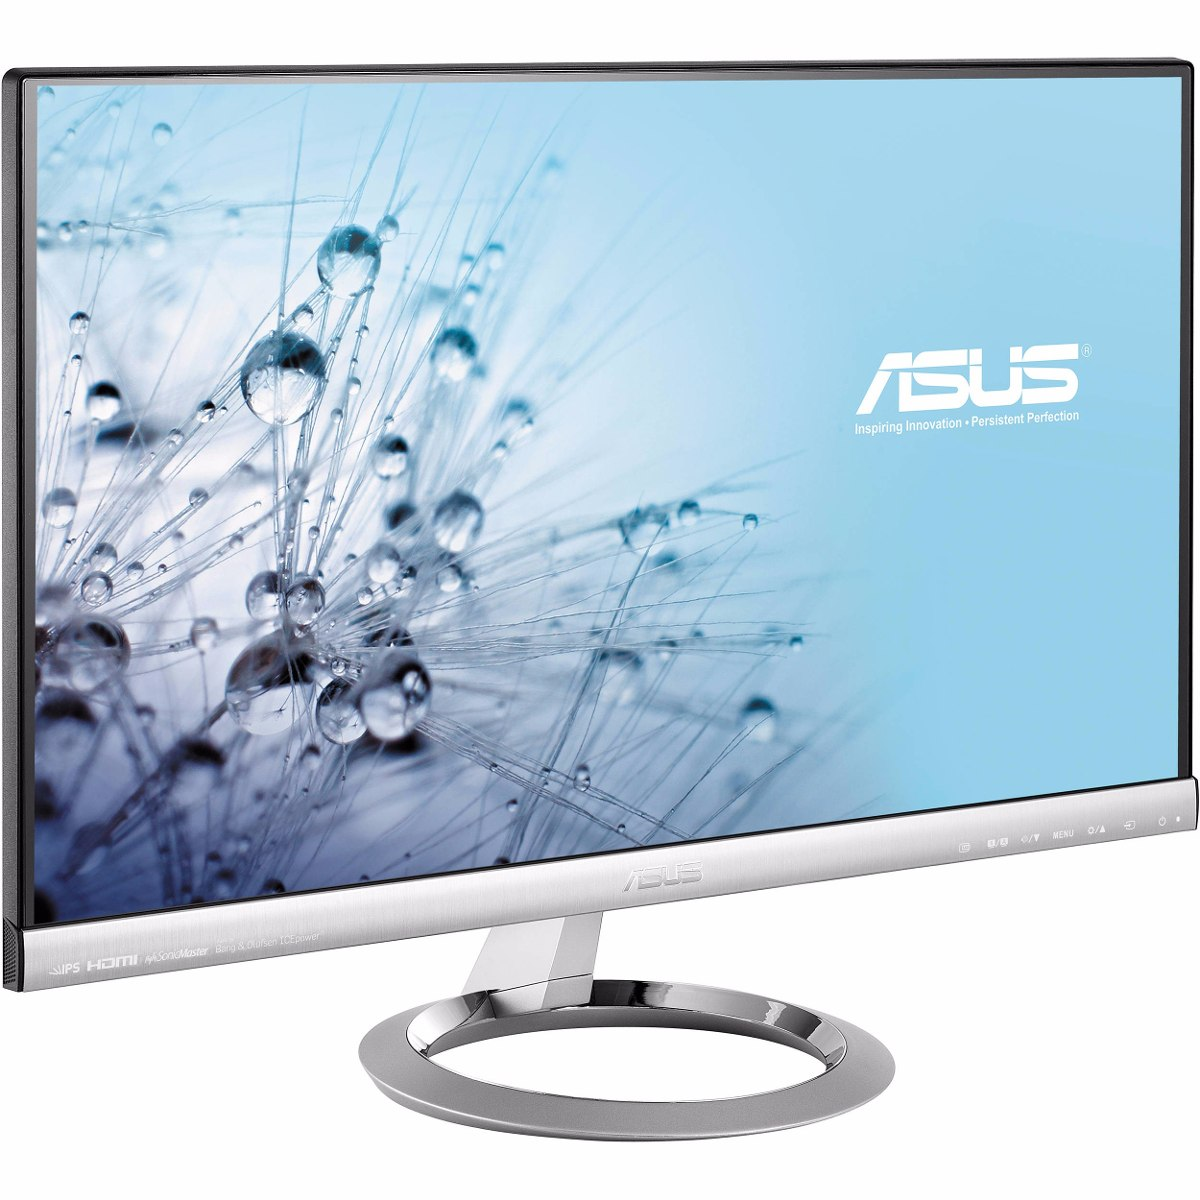 Asus Monitor Mx239h Led 23pul Fhd Hdmi Wide Screen Sin Marco ...